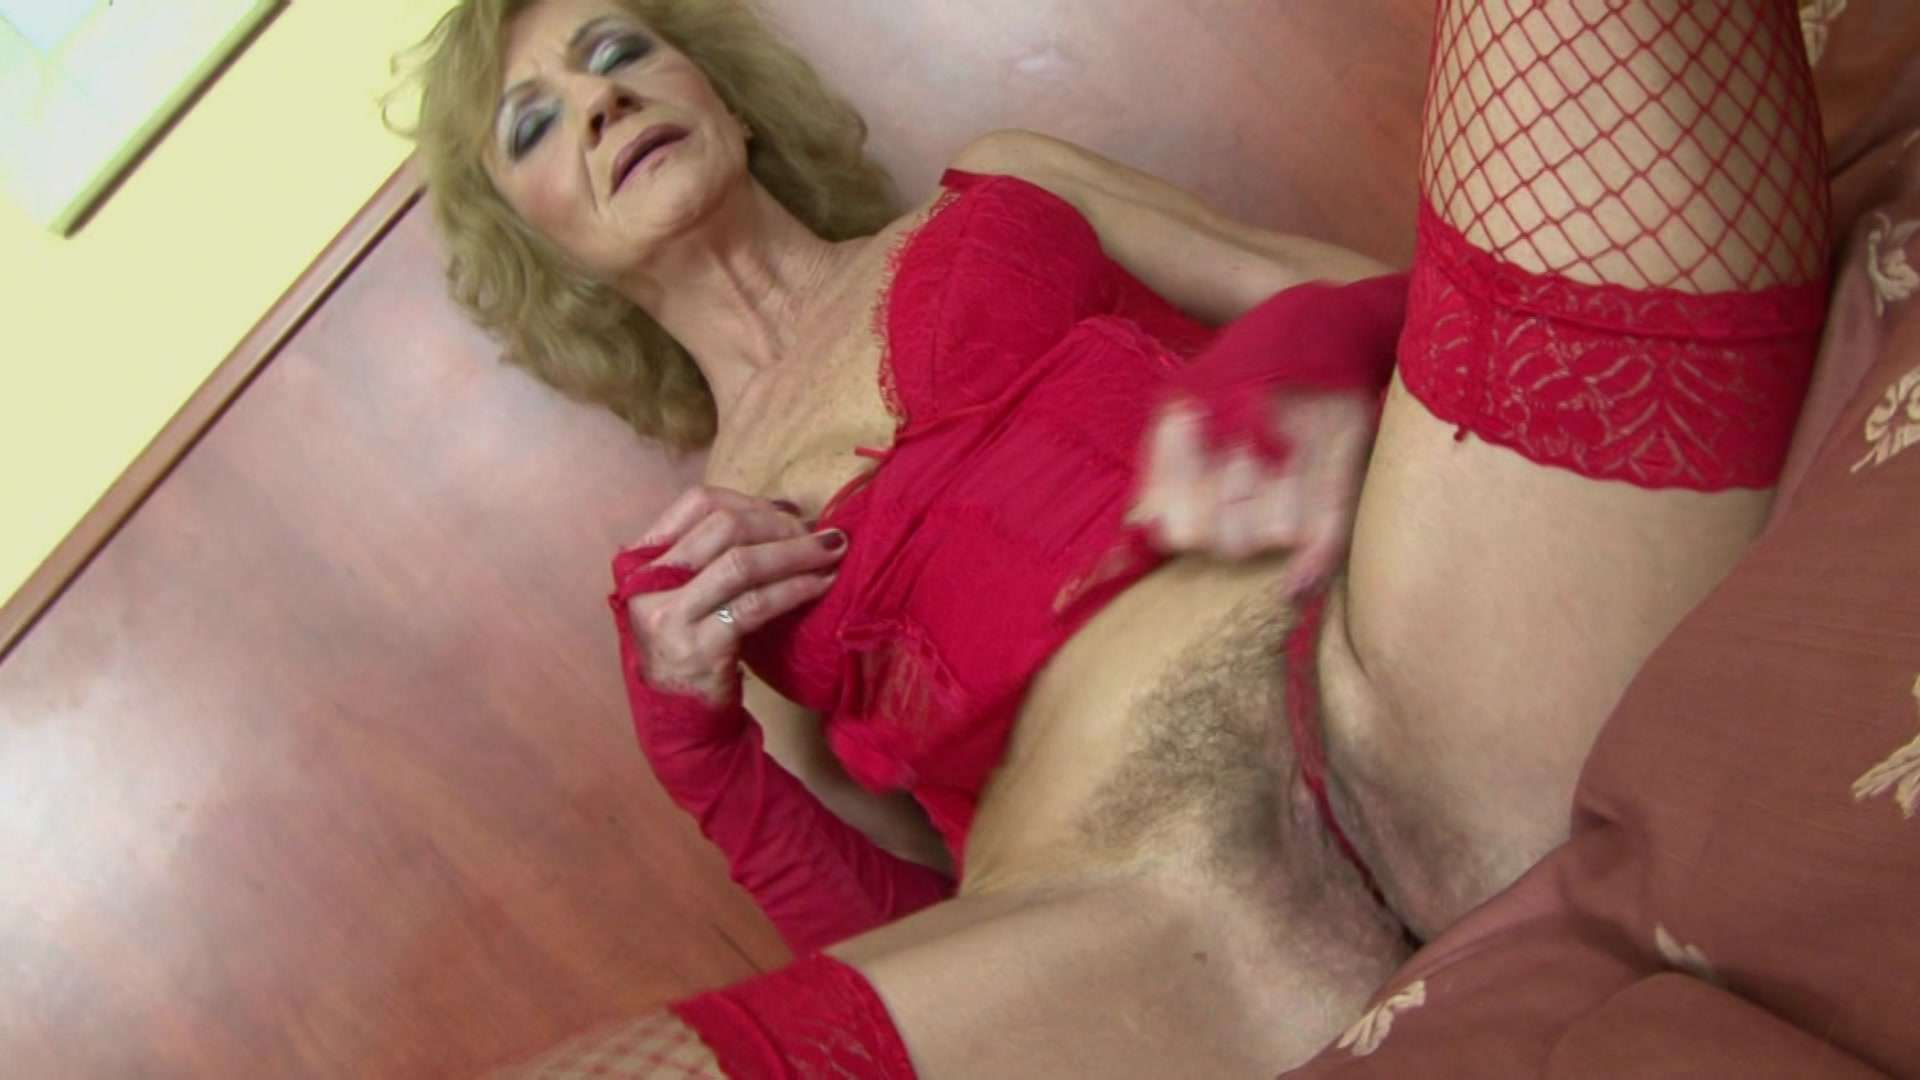 Anal Loving Blonde Gets Her Ass Gaped by a BBC